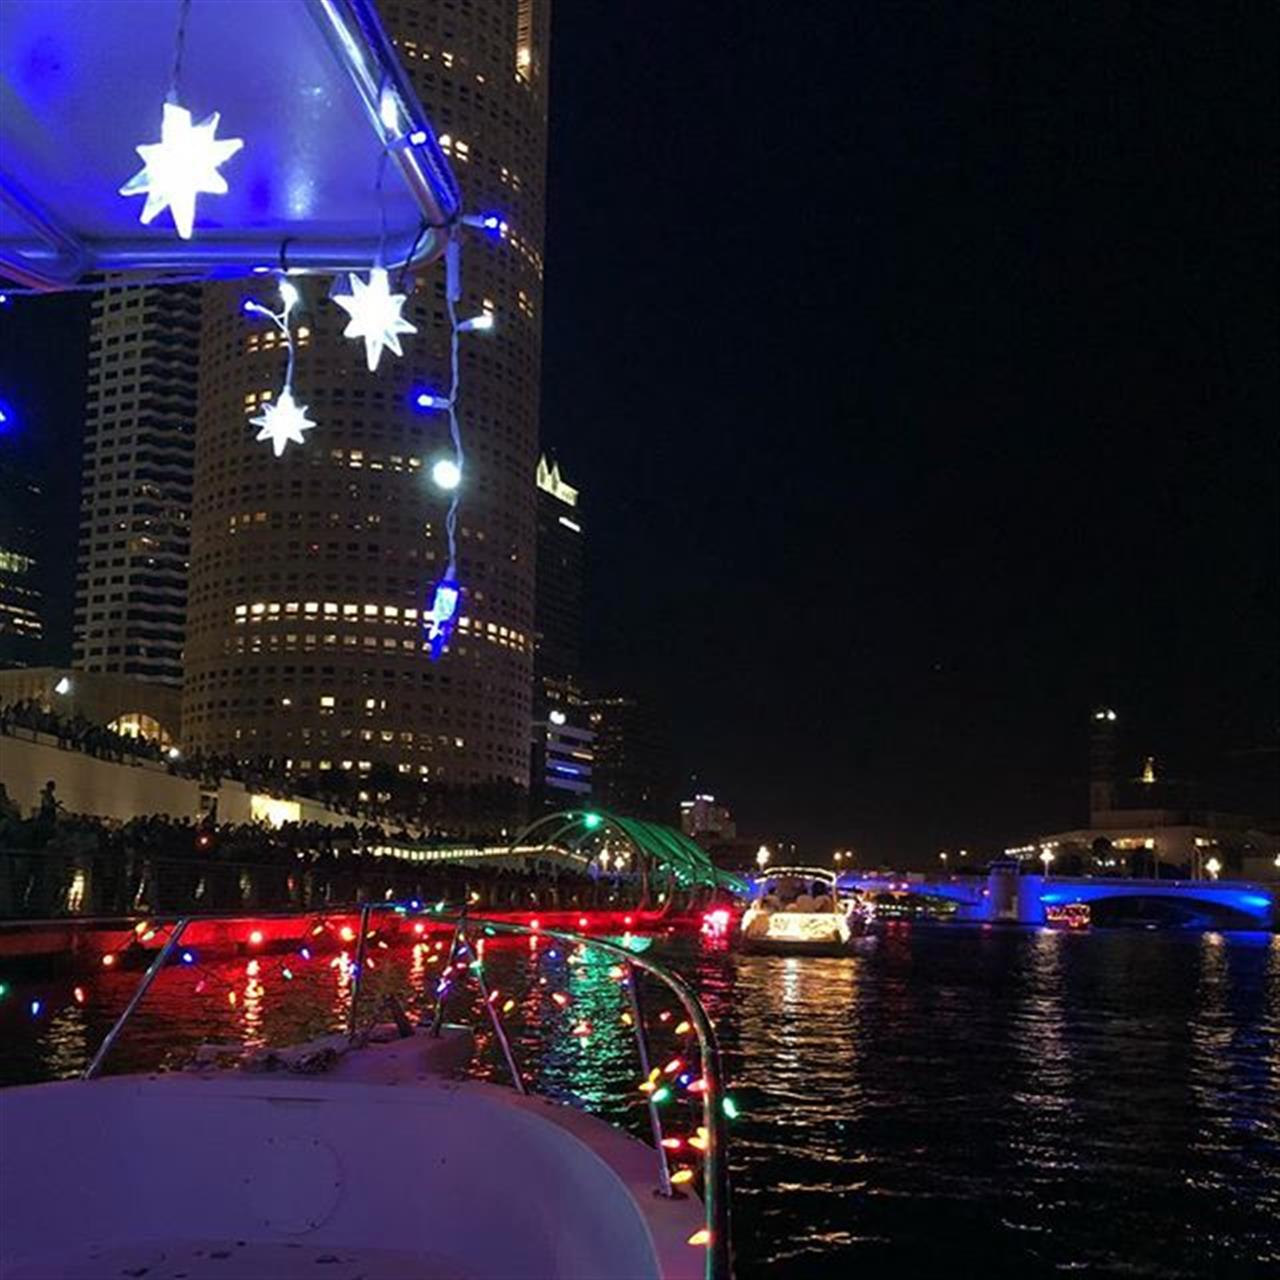 Merry Christmas from the #Tampa boat parade! #davisislands #tampabay #harbourisland #downtowntampa #winterinflorida #leadingrelocal